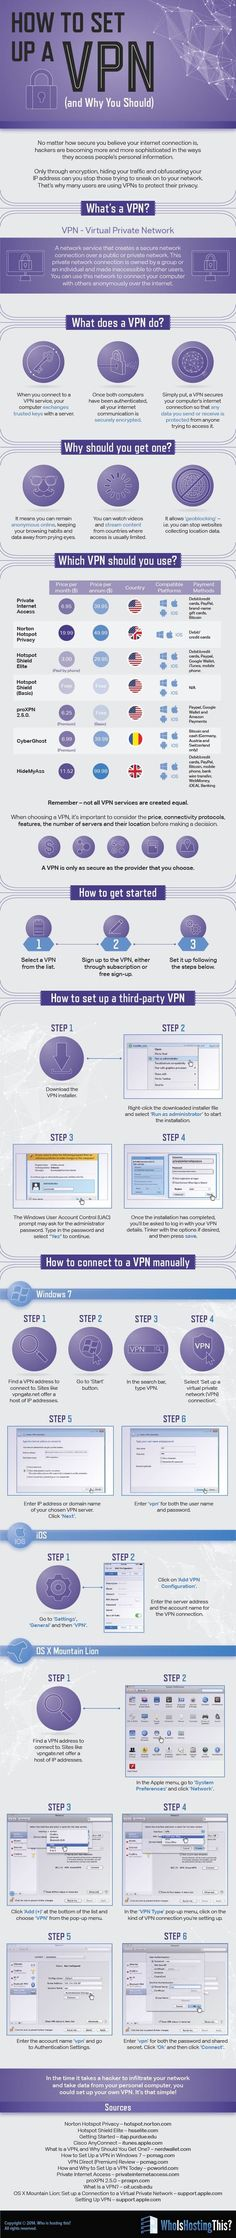 Infographic: How To Set Up a VPN (and Why You Should)No matter how secure you believe your internet connection is, hackers are becoming more and more sophisticated in the ways they access people's personal information. Only through encryption, hiding your traffic and obfuscating your IP address can you stop those trying to sneak on to your network. That's why many users are using VPNs to protect their privacy.